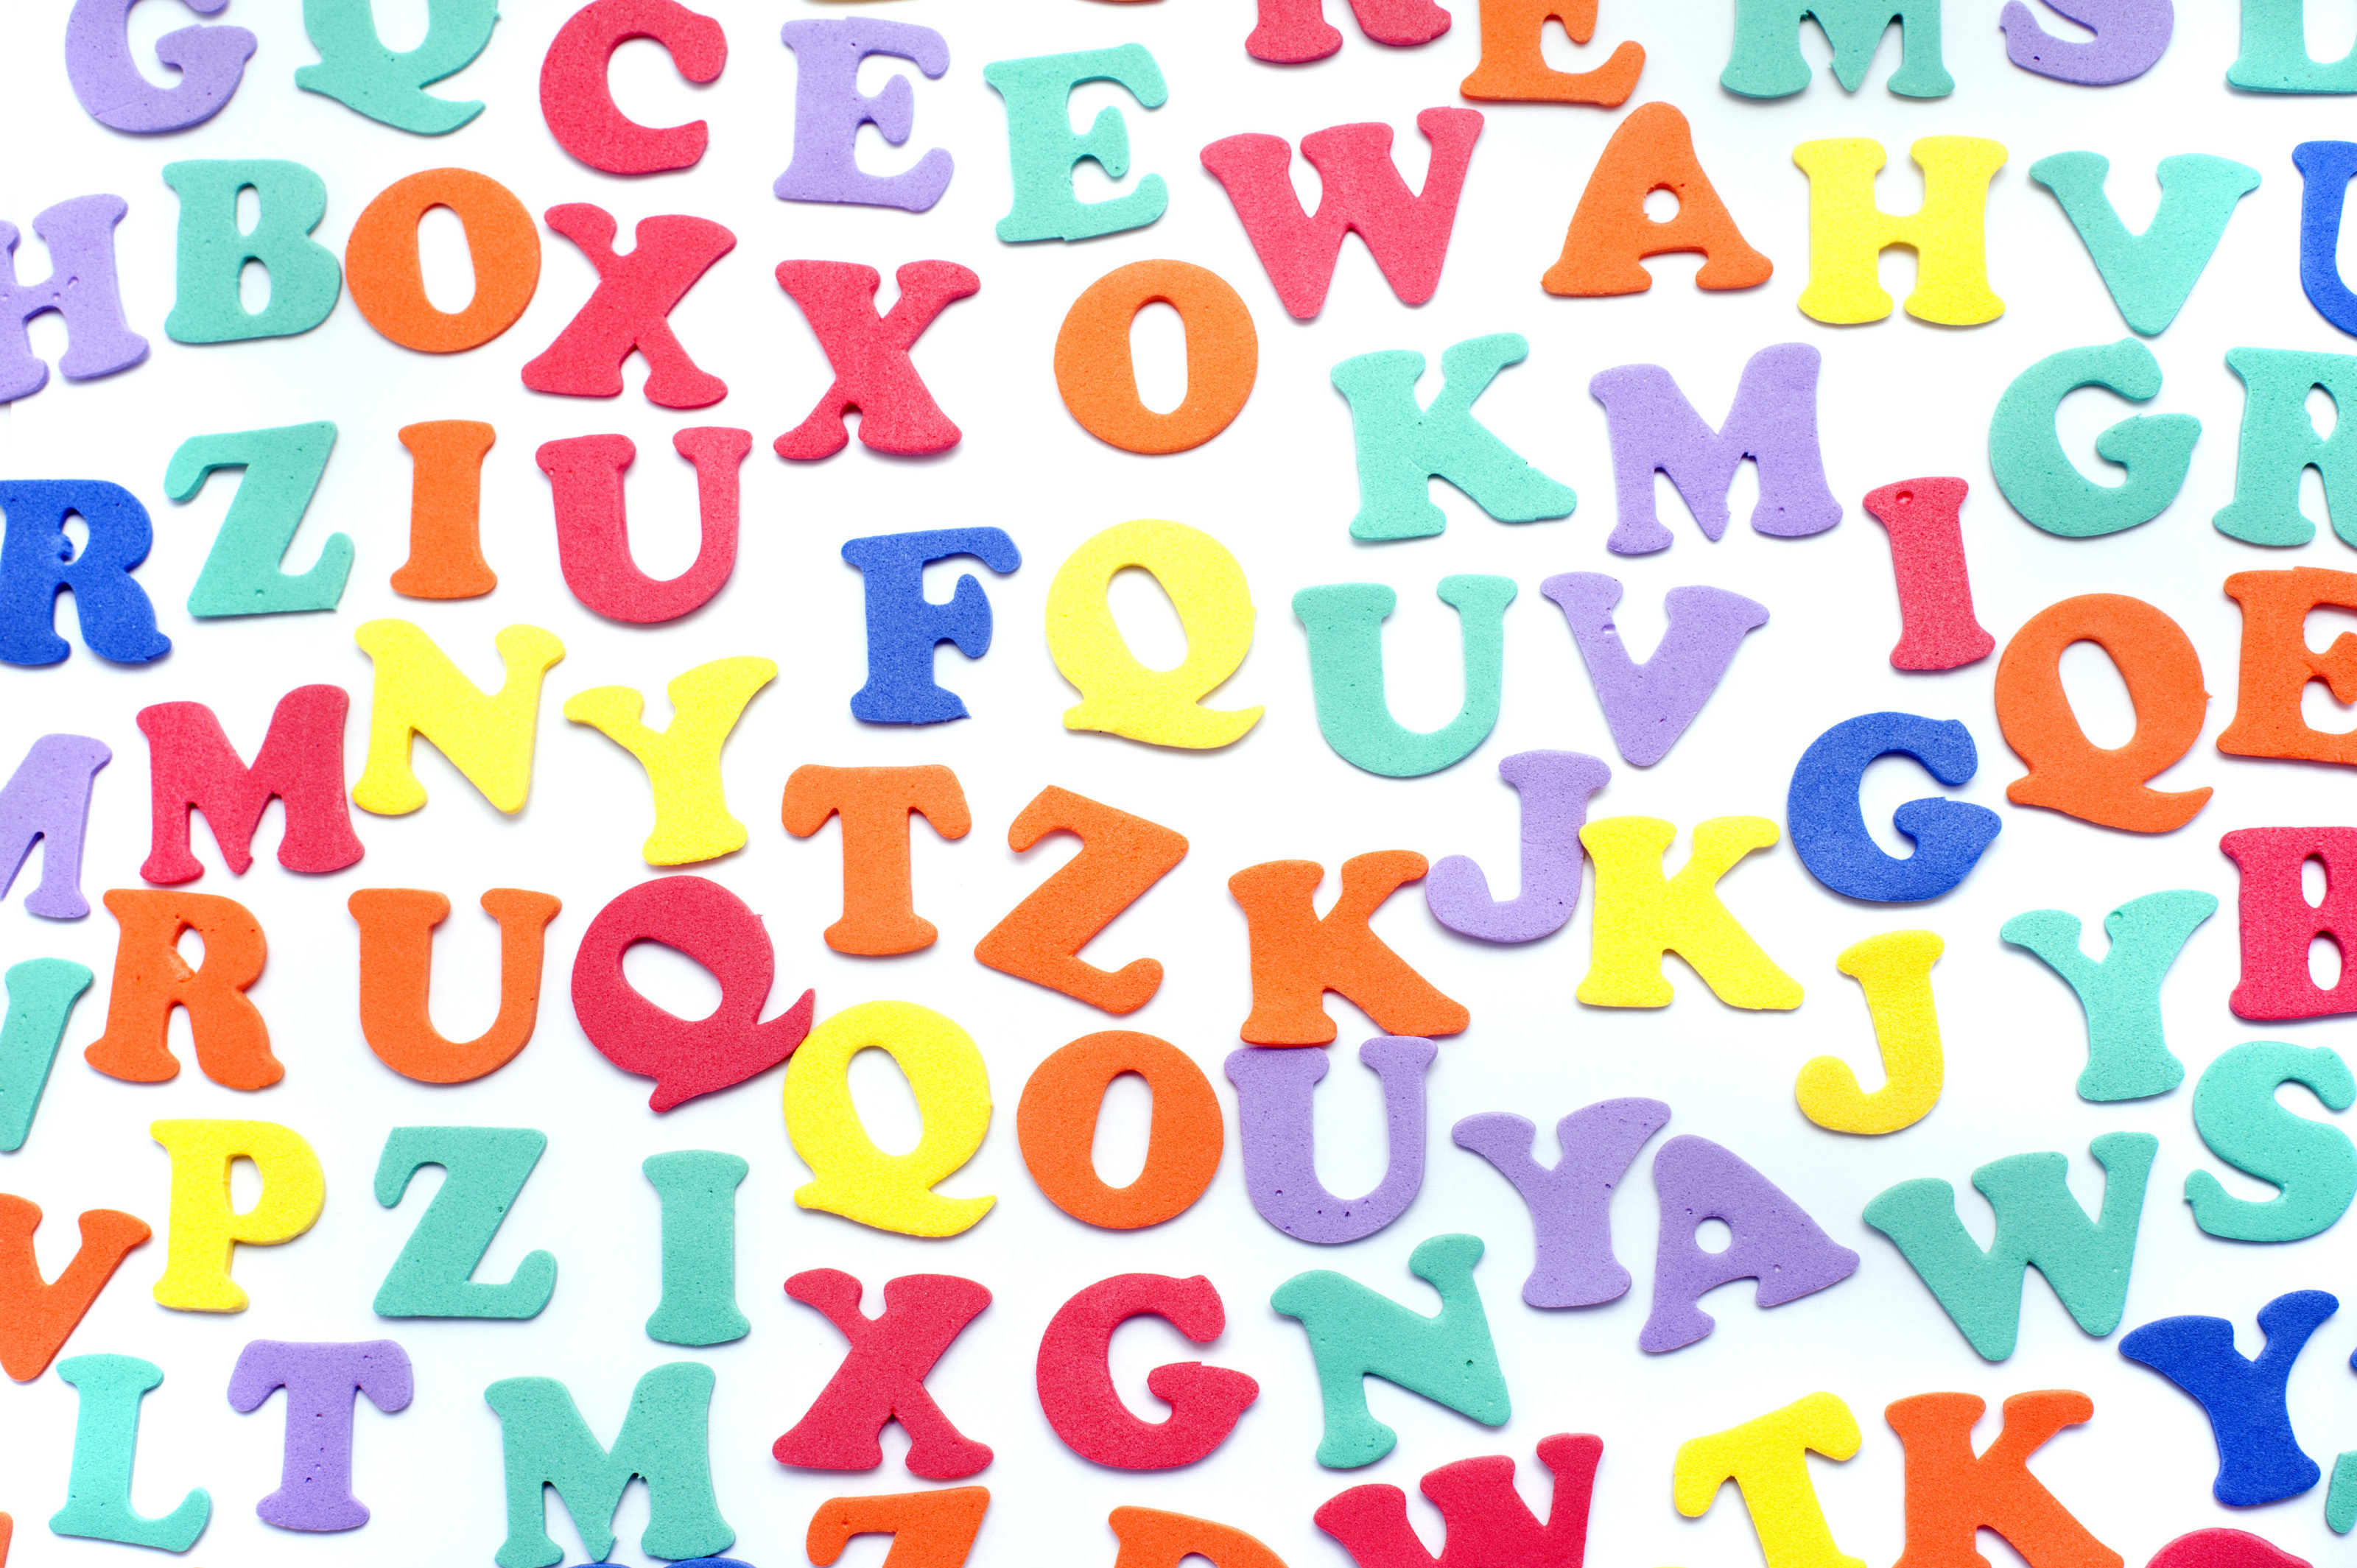 Hello Kitty Stickers For Walls Alphabet Letters Wallpapers Wallpapersafari